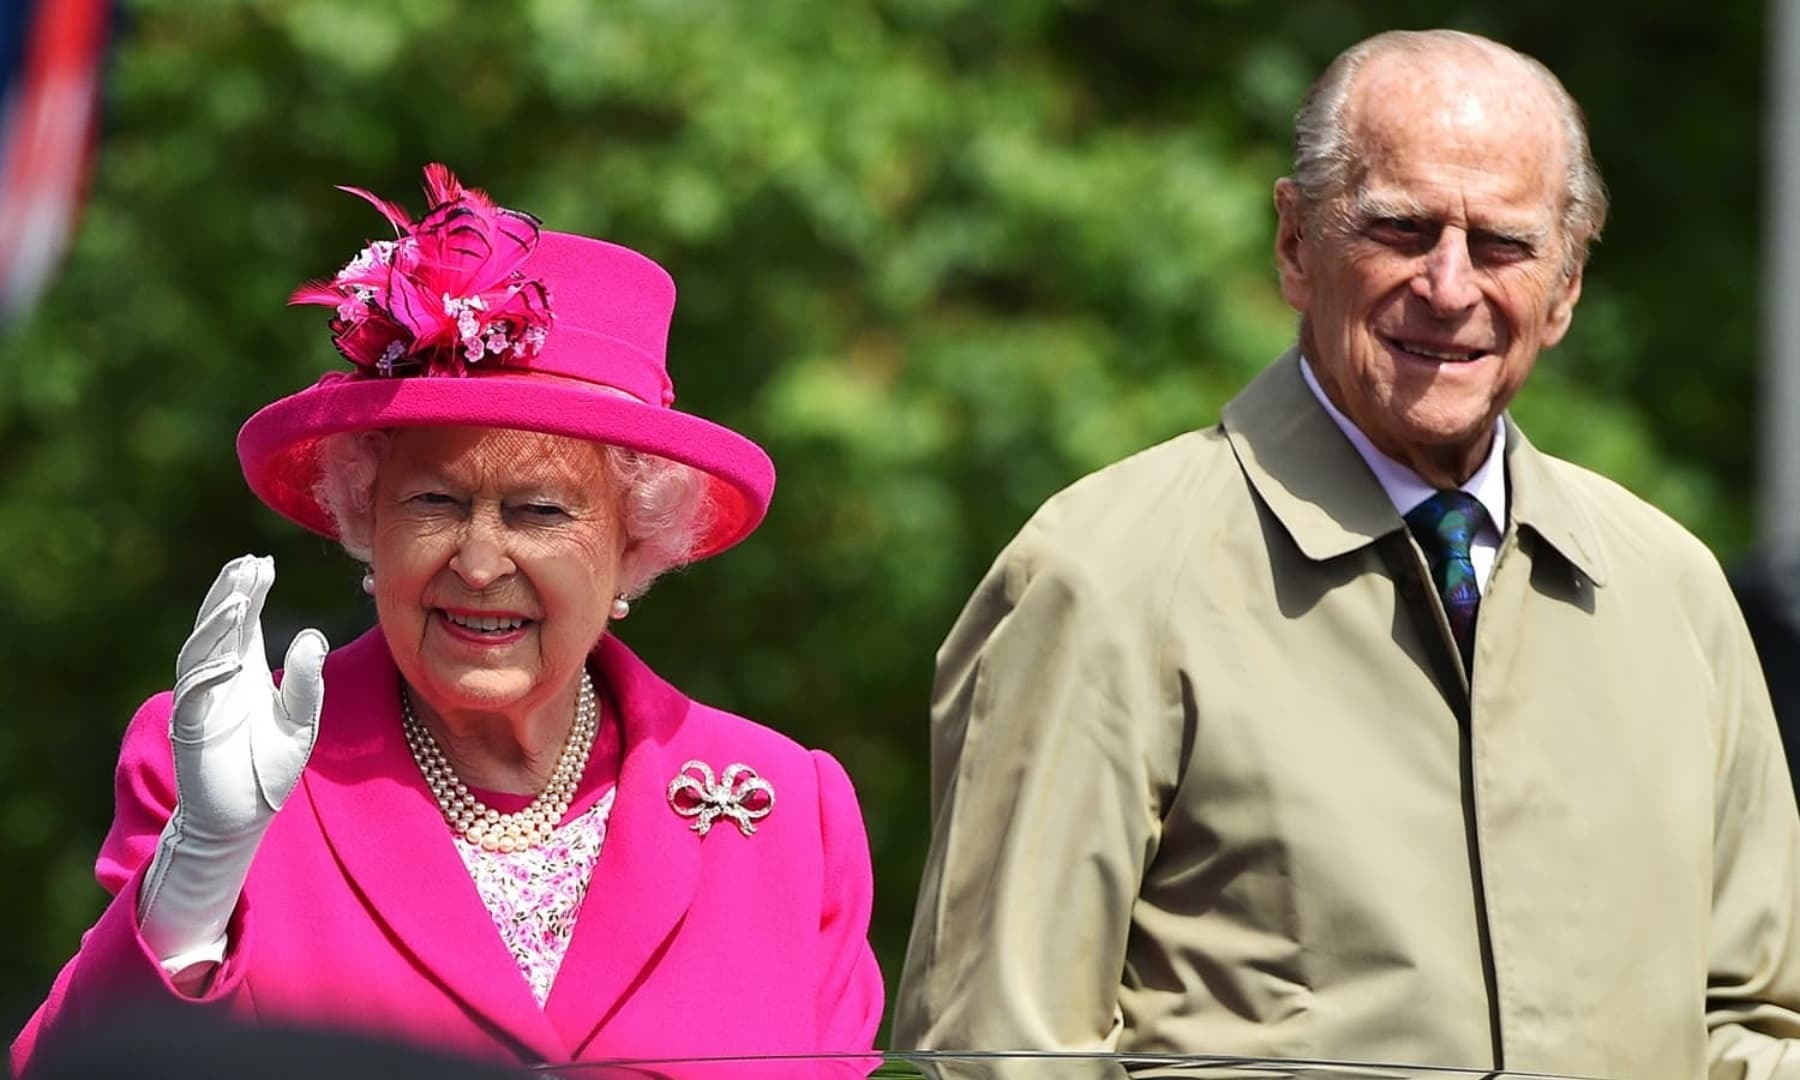 Queen Elizabeth II and Prince Philip wave to guests from their car as they attend the Patron's Lunch on the Mall, an event to mark her official 90th birthday in London. — AFP/File